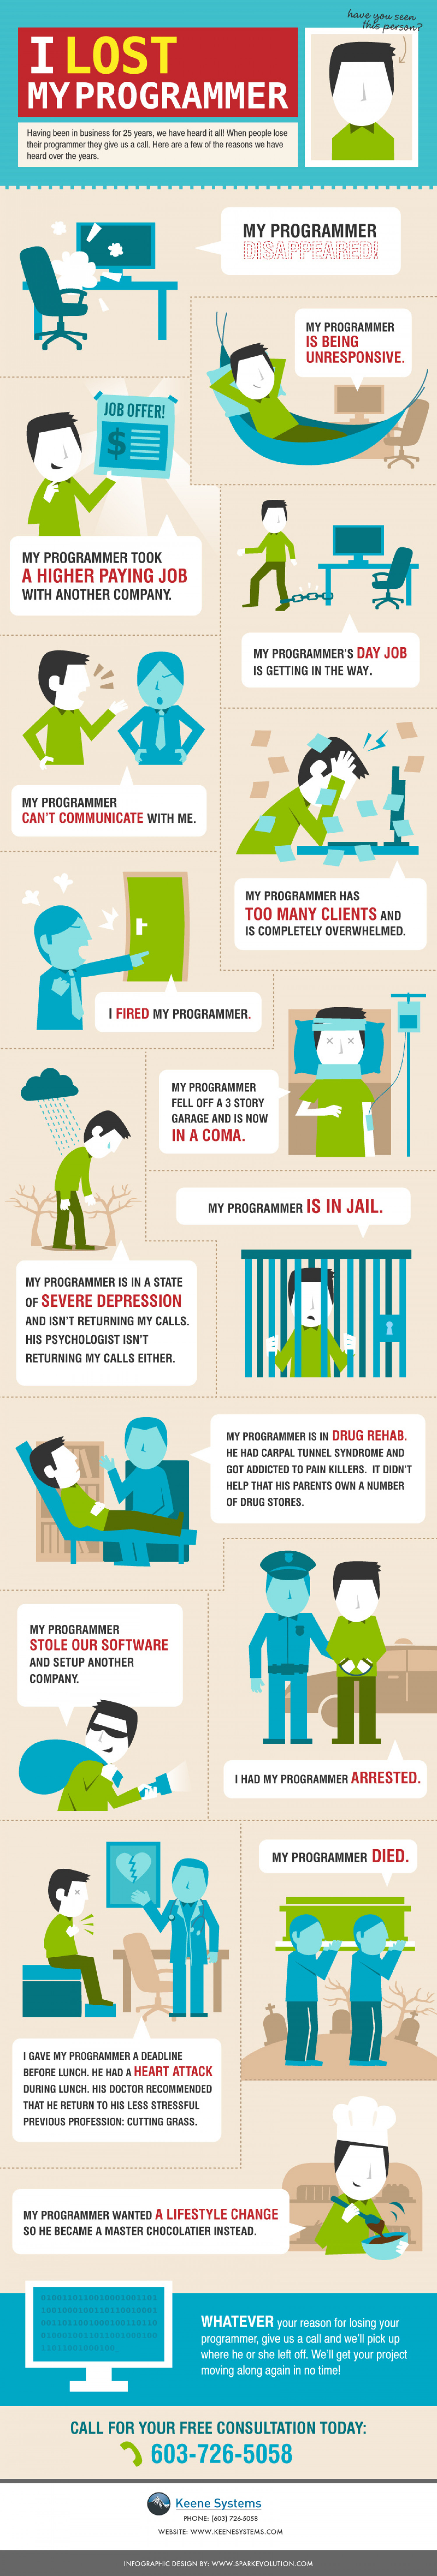 I Lost My Programmer Infographic